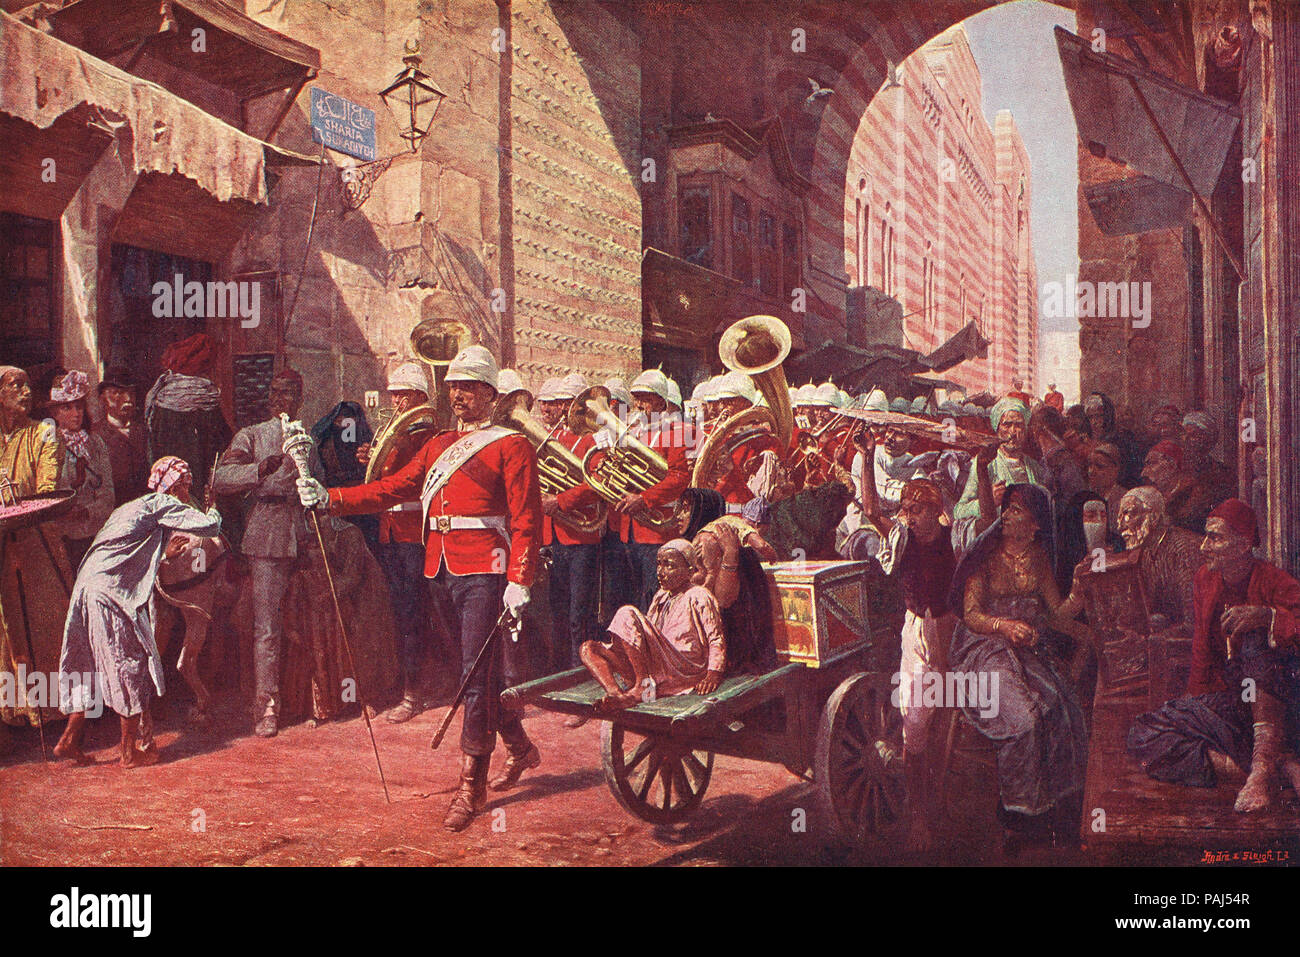 A friendly power in Egypt, The Welsh Regiment, marching through the Metwali gate, Cairo, 1887, during the veiled protectorate - Stock Image